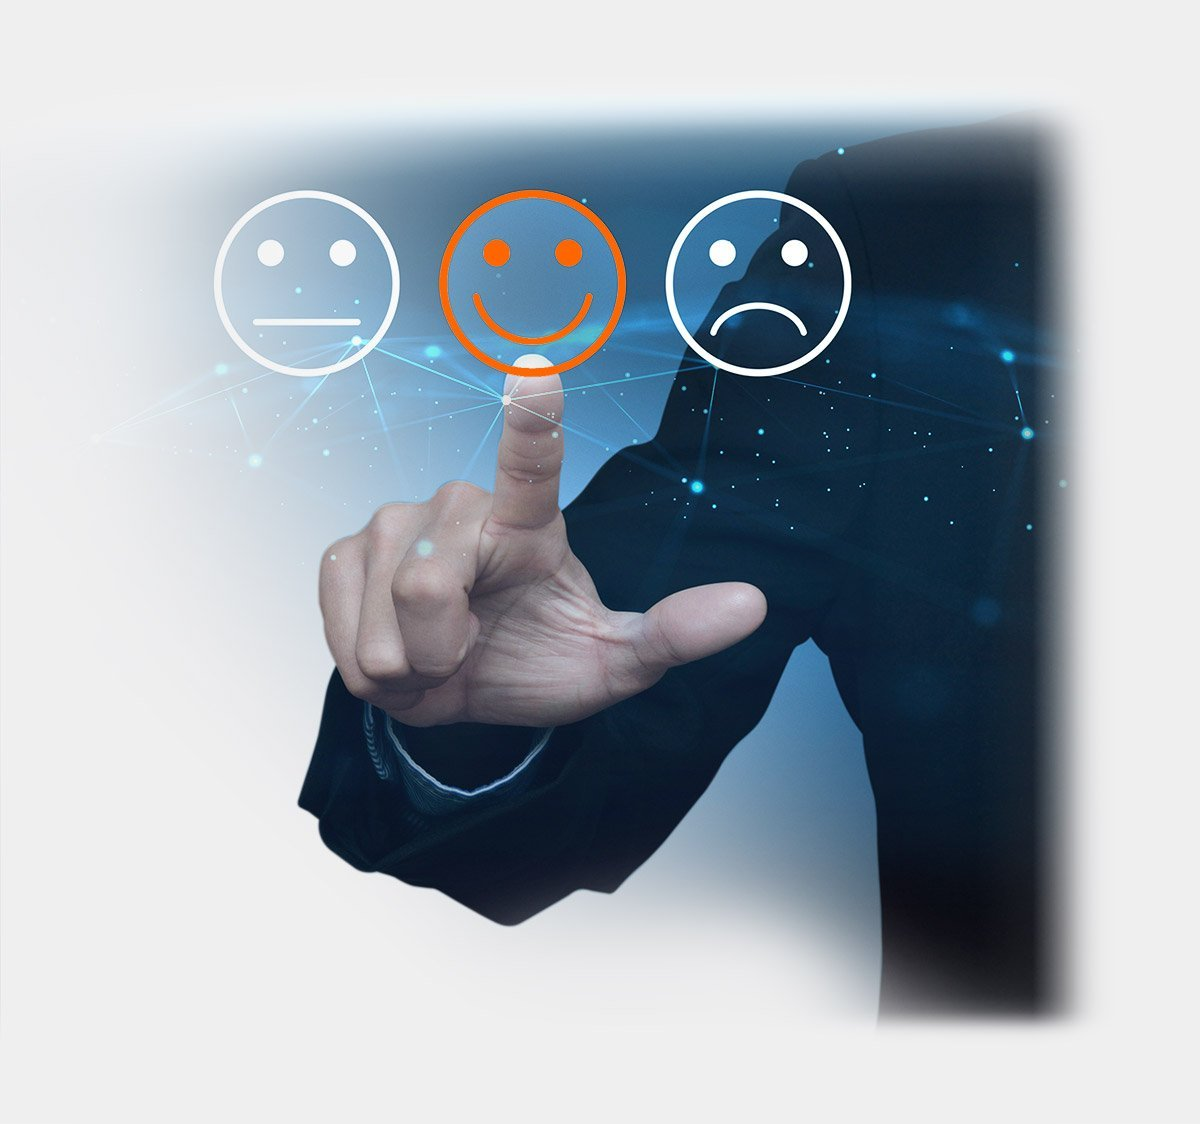 Improve customer loyalty by delivering the service your customers deserve